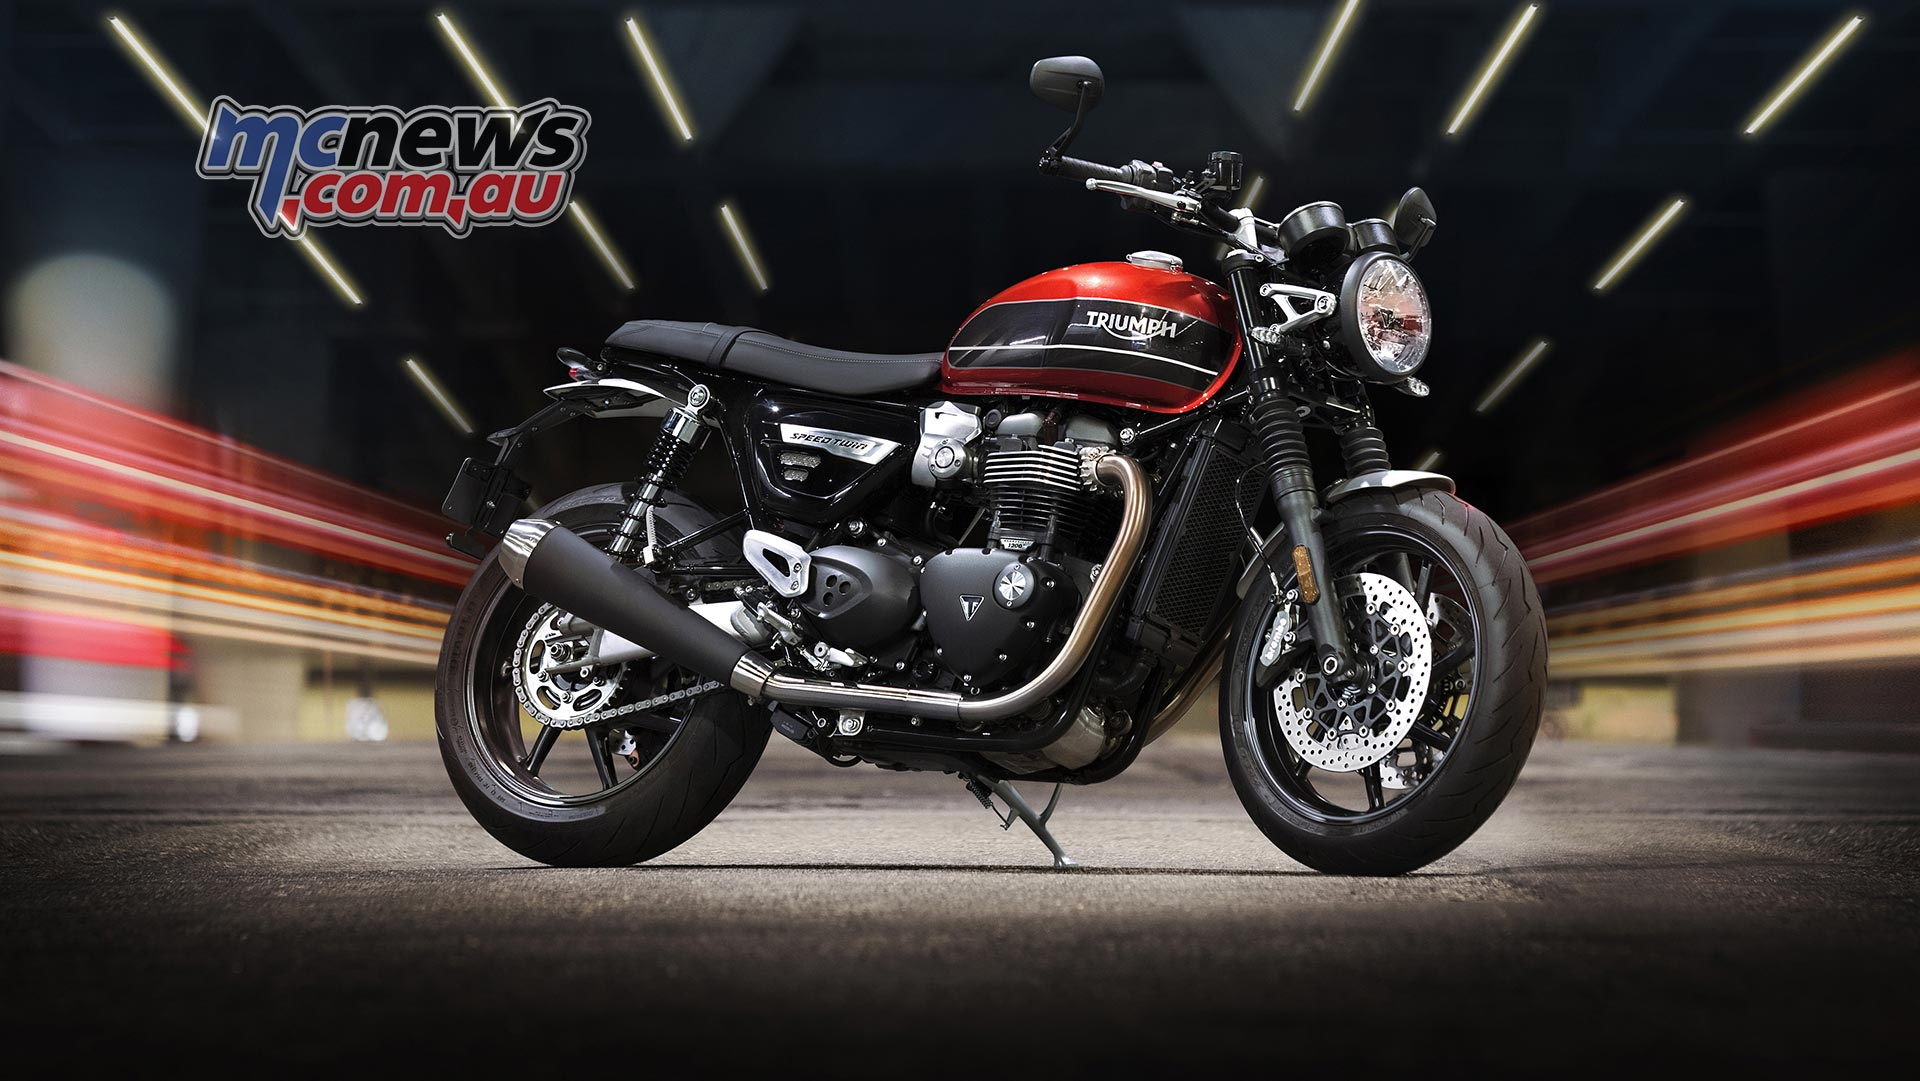 Astounding 2019 Triumph Speed Twin 196Kg 112 Nm 96 Hp Mcnews Com Au Spiritservingveterans Wood Chair Design Ideas Spiritservingveteransorg